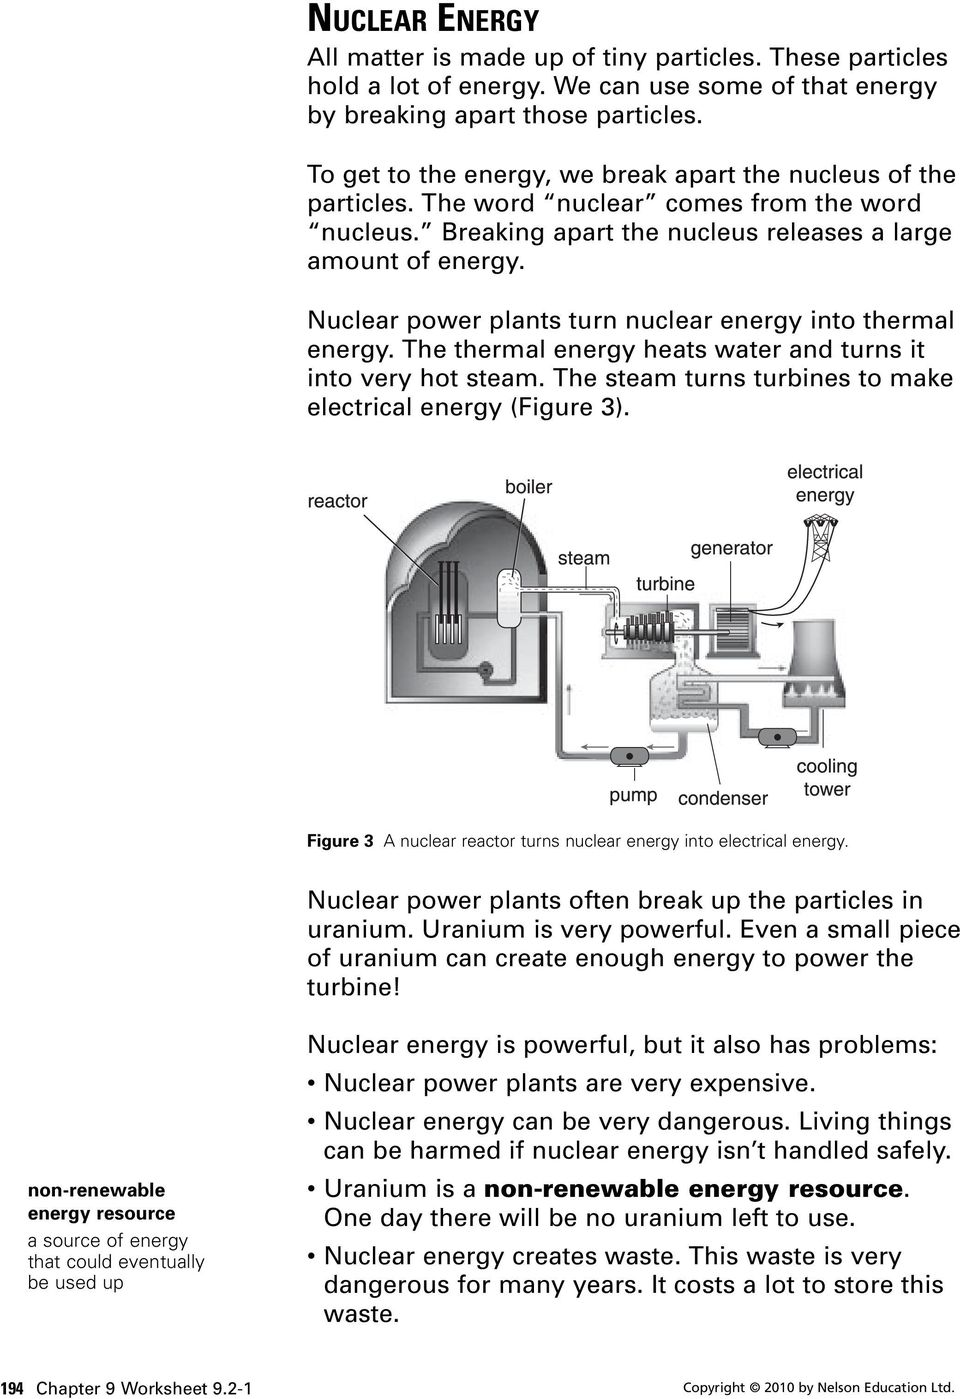 Nuclear power plants turn nuclear energy into thermal energy. The thermal energy heats water and turns it into very hot steam. The steam turns turbines to make electrical energy (Figure 3).